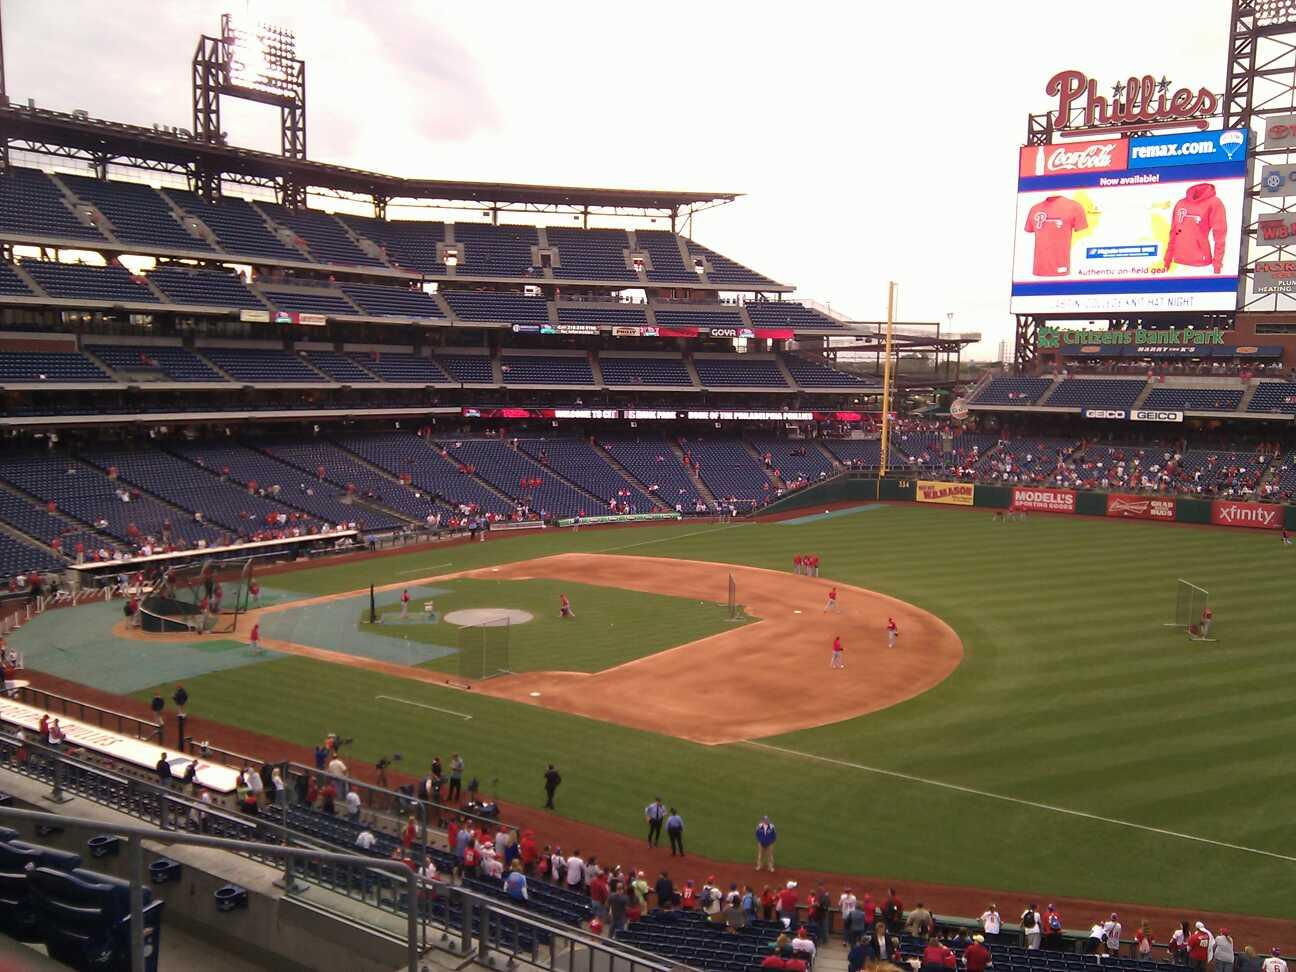 Citizens Bank Park Section 211 Row 5 Seat 5